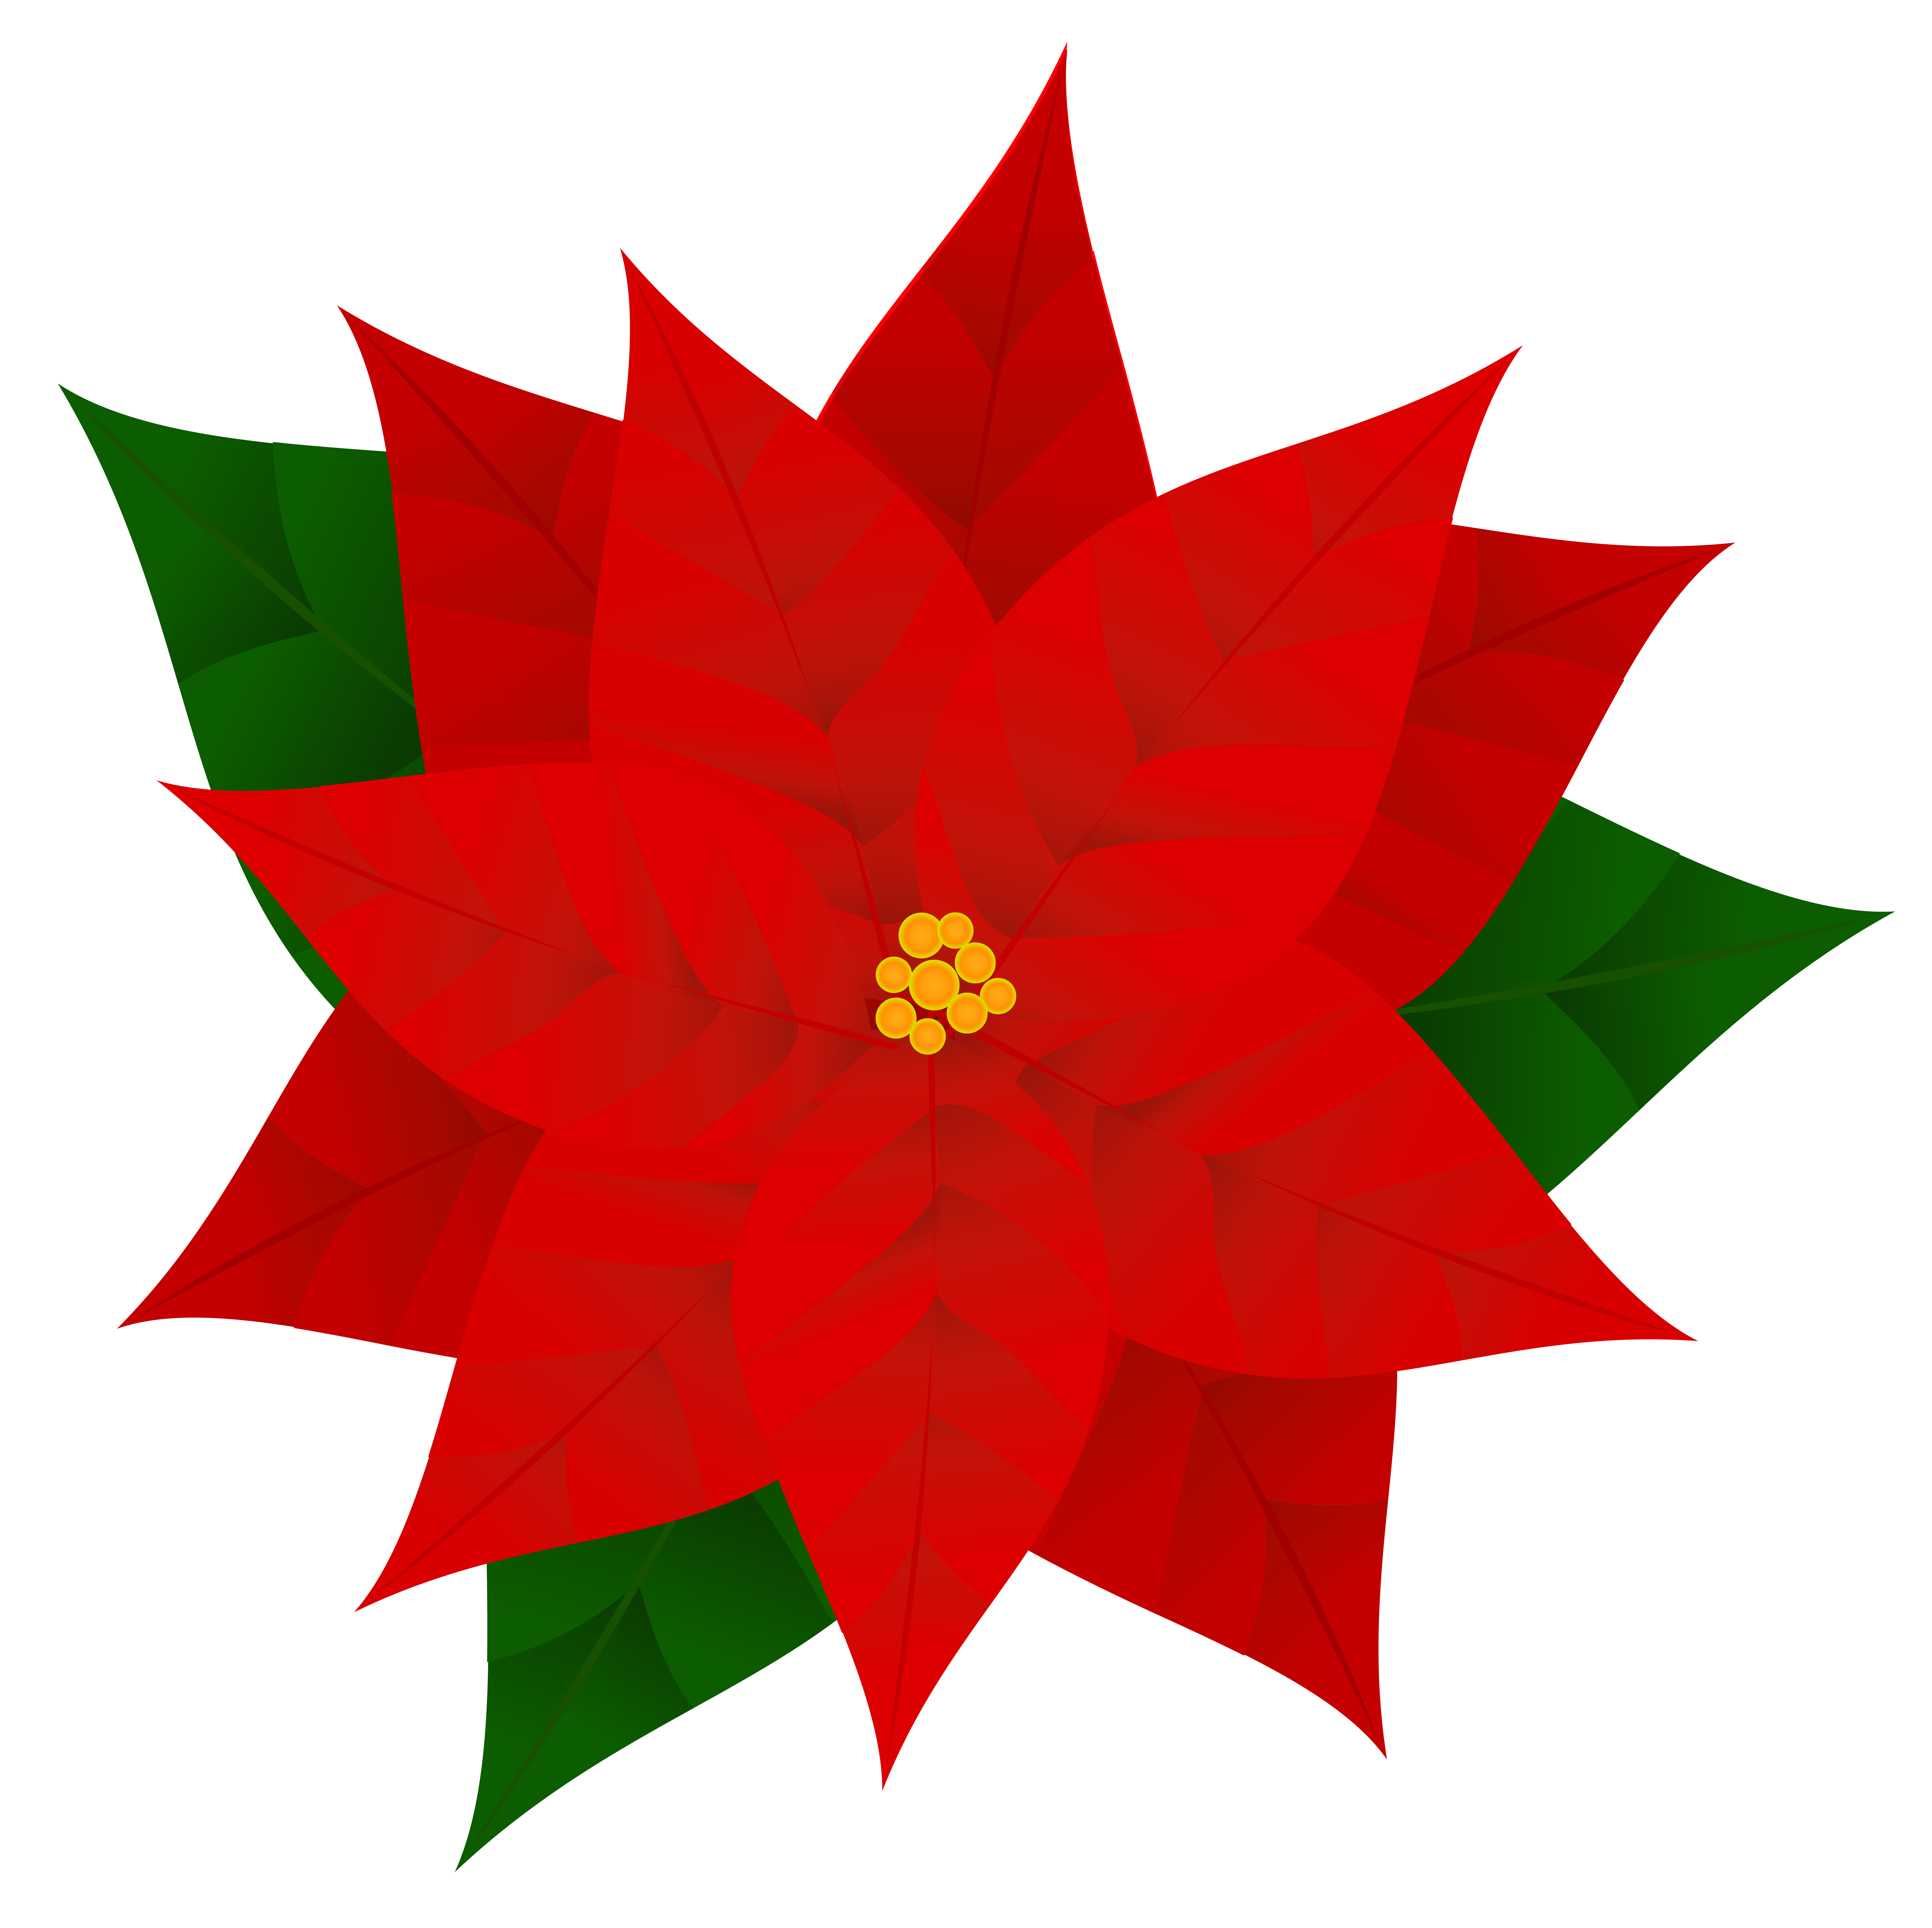 banner royalty free stock Poinsettias clipart. Free cliparts download clip.